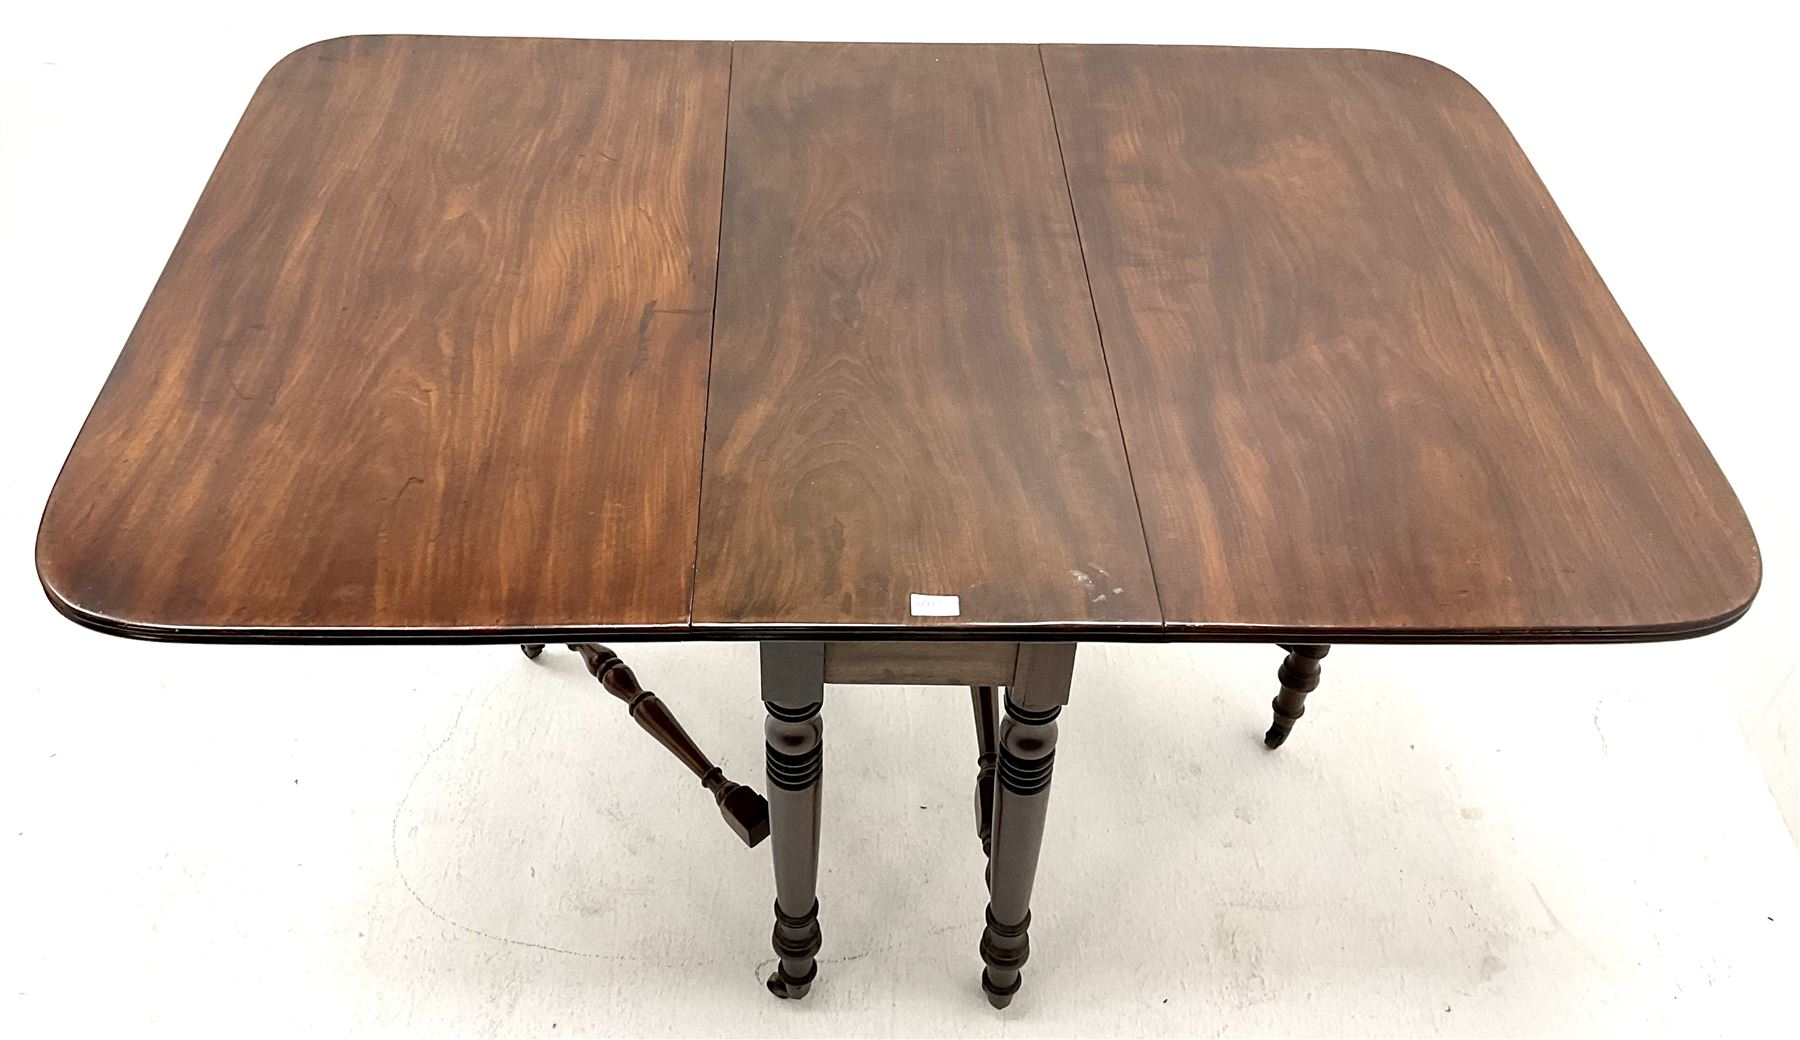 19th century mahogany dropleaf table turned tapering supports joined by stretches - Image 3 of 3